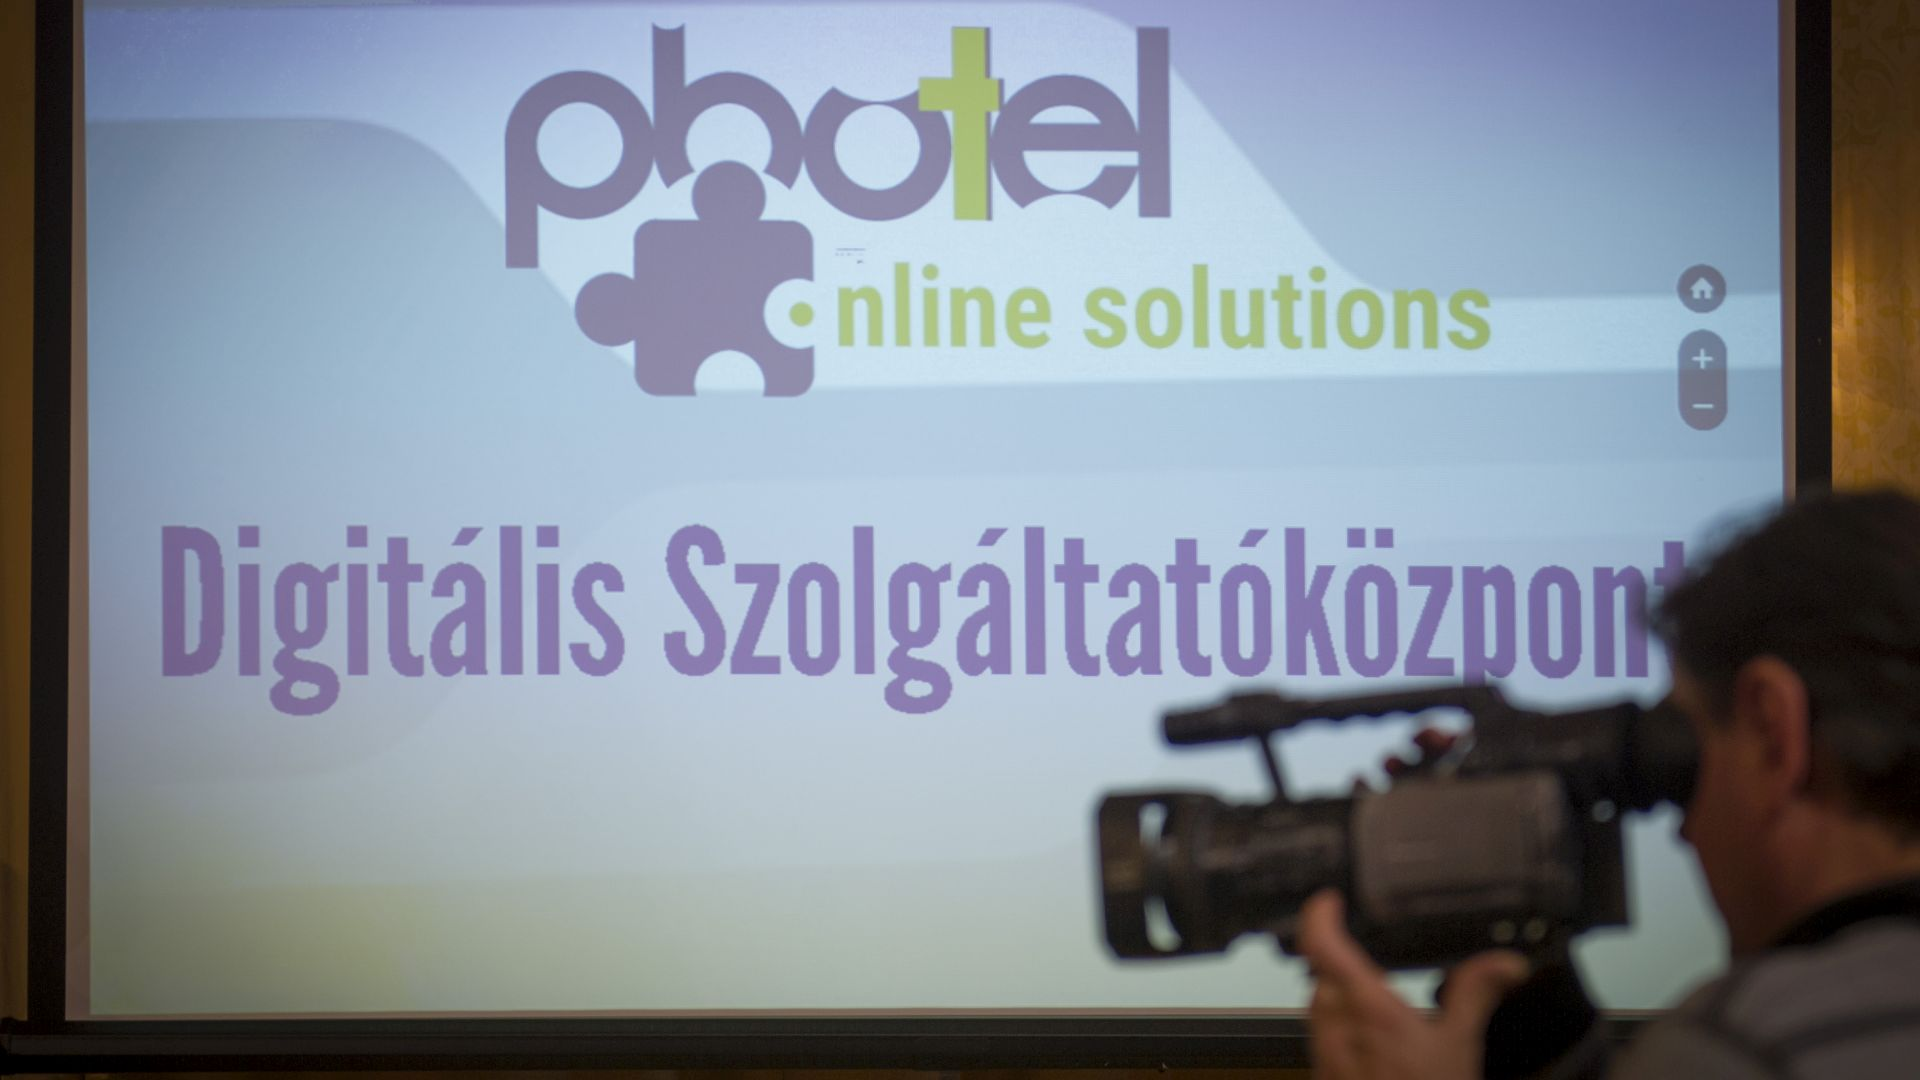 Photel Online Solutions establishes a digital service centre in Szekszárd